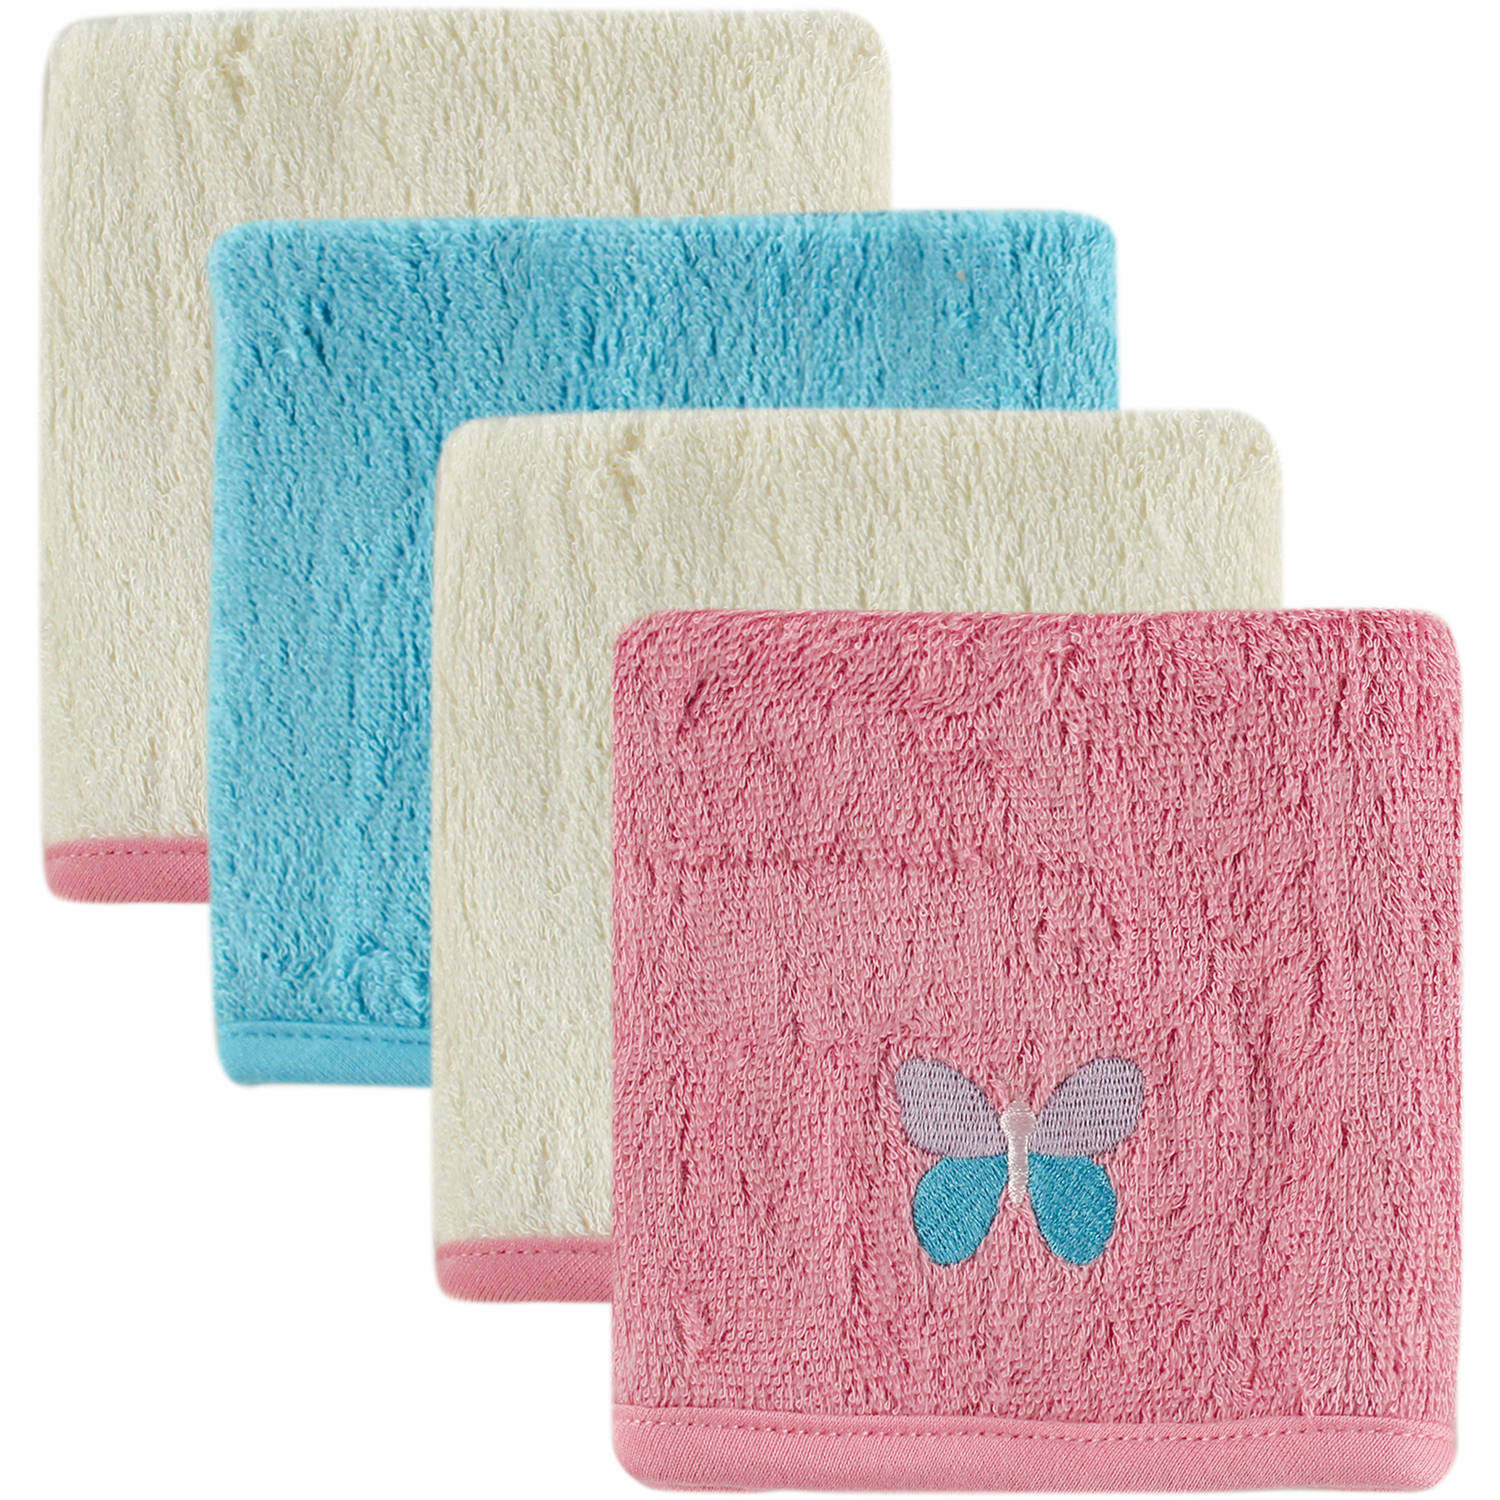 Hudson Baby Bamboo Embroidered Washcloth, 4pk, Girl, Choose Your Color